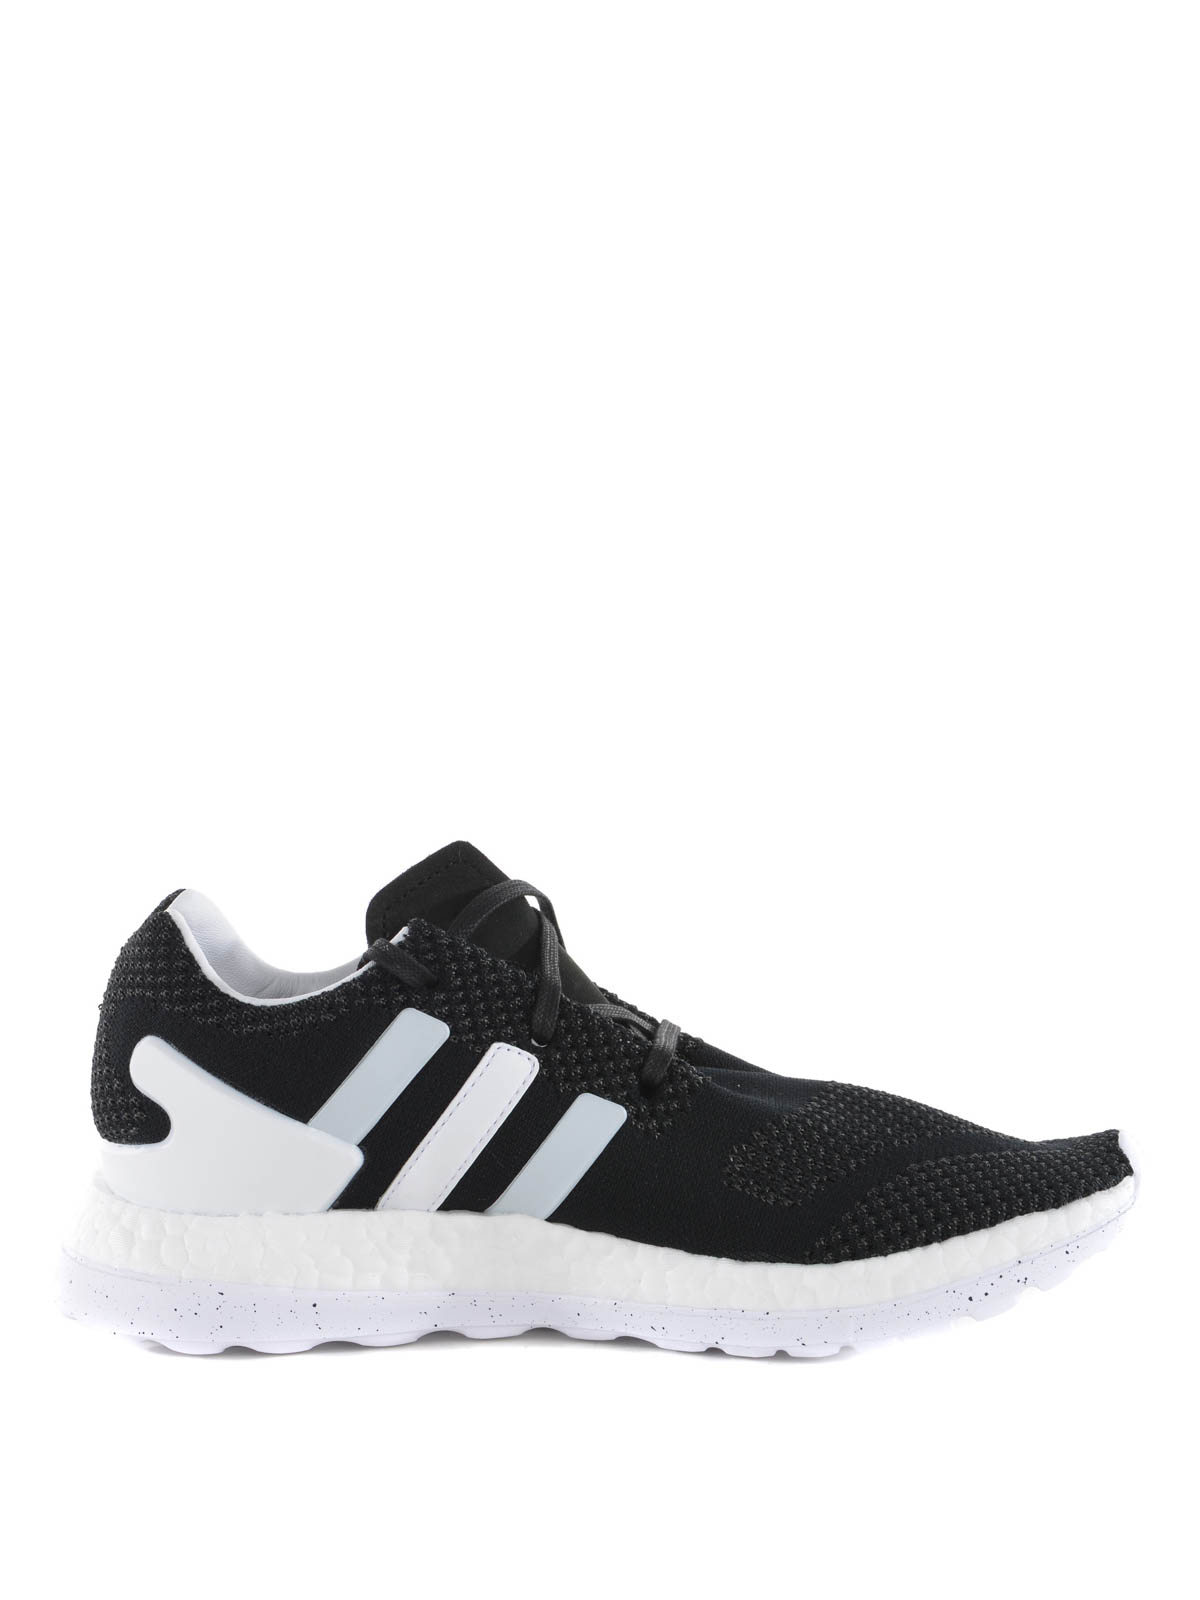 innovative design 1bf3d 64faa iKRIX ADIDAS Y-3  sneakers - Sneaker Pure Boost ZG Knit